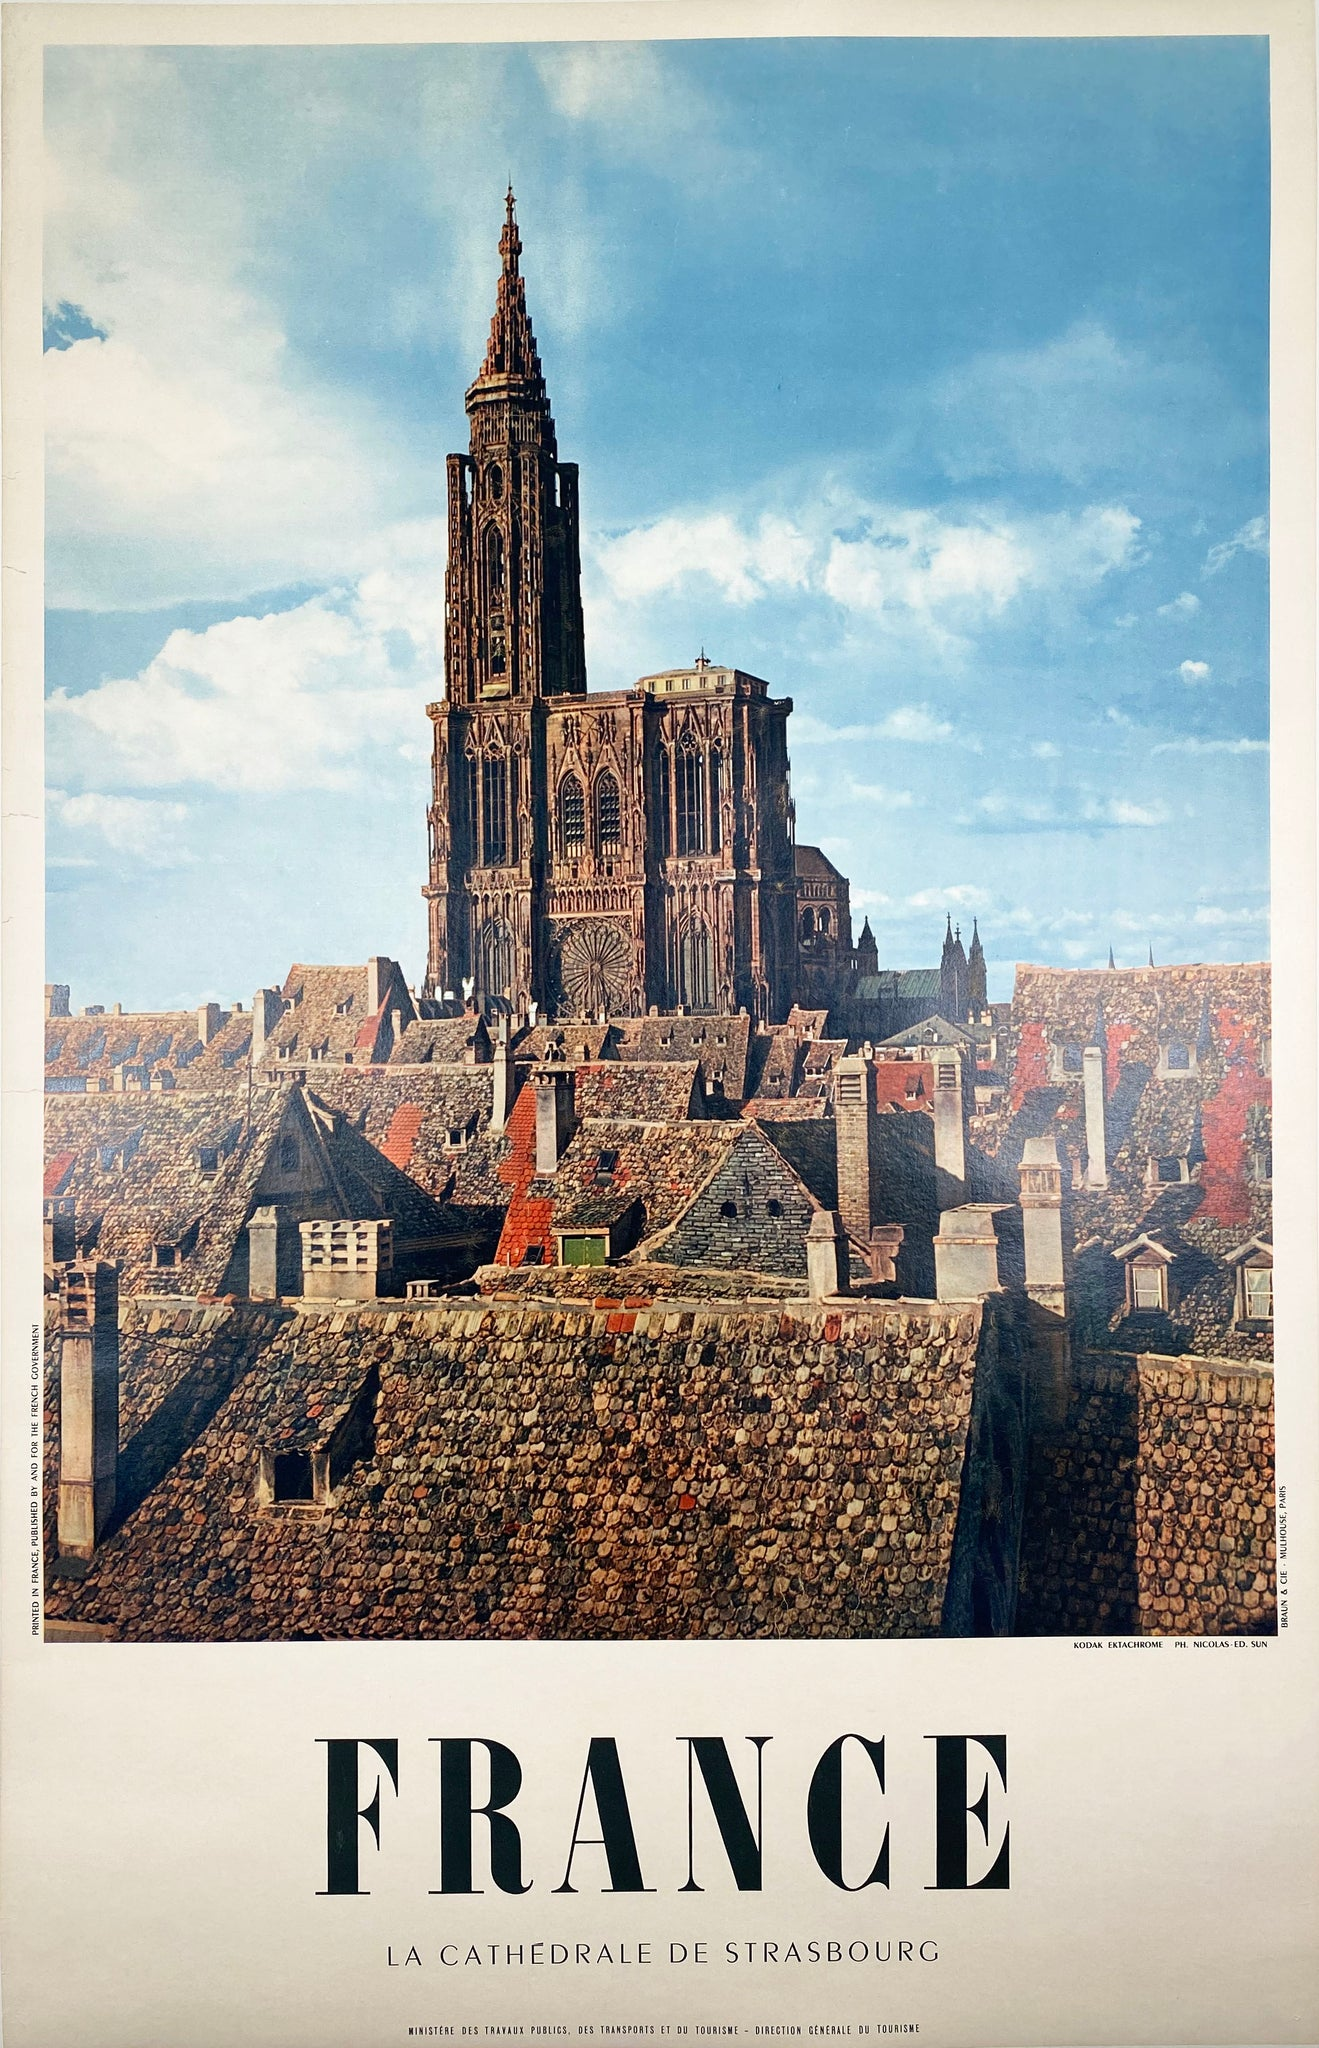 France - La Cathedrale de Strasbourg